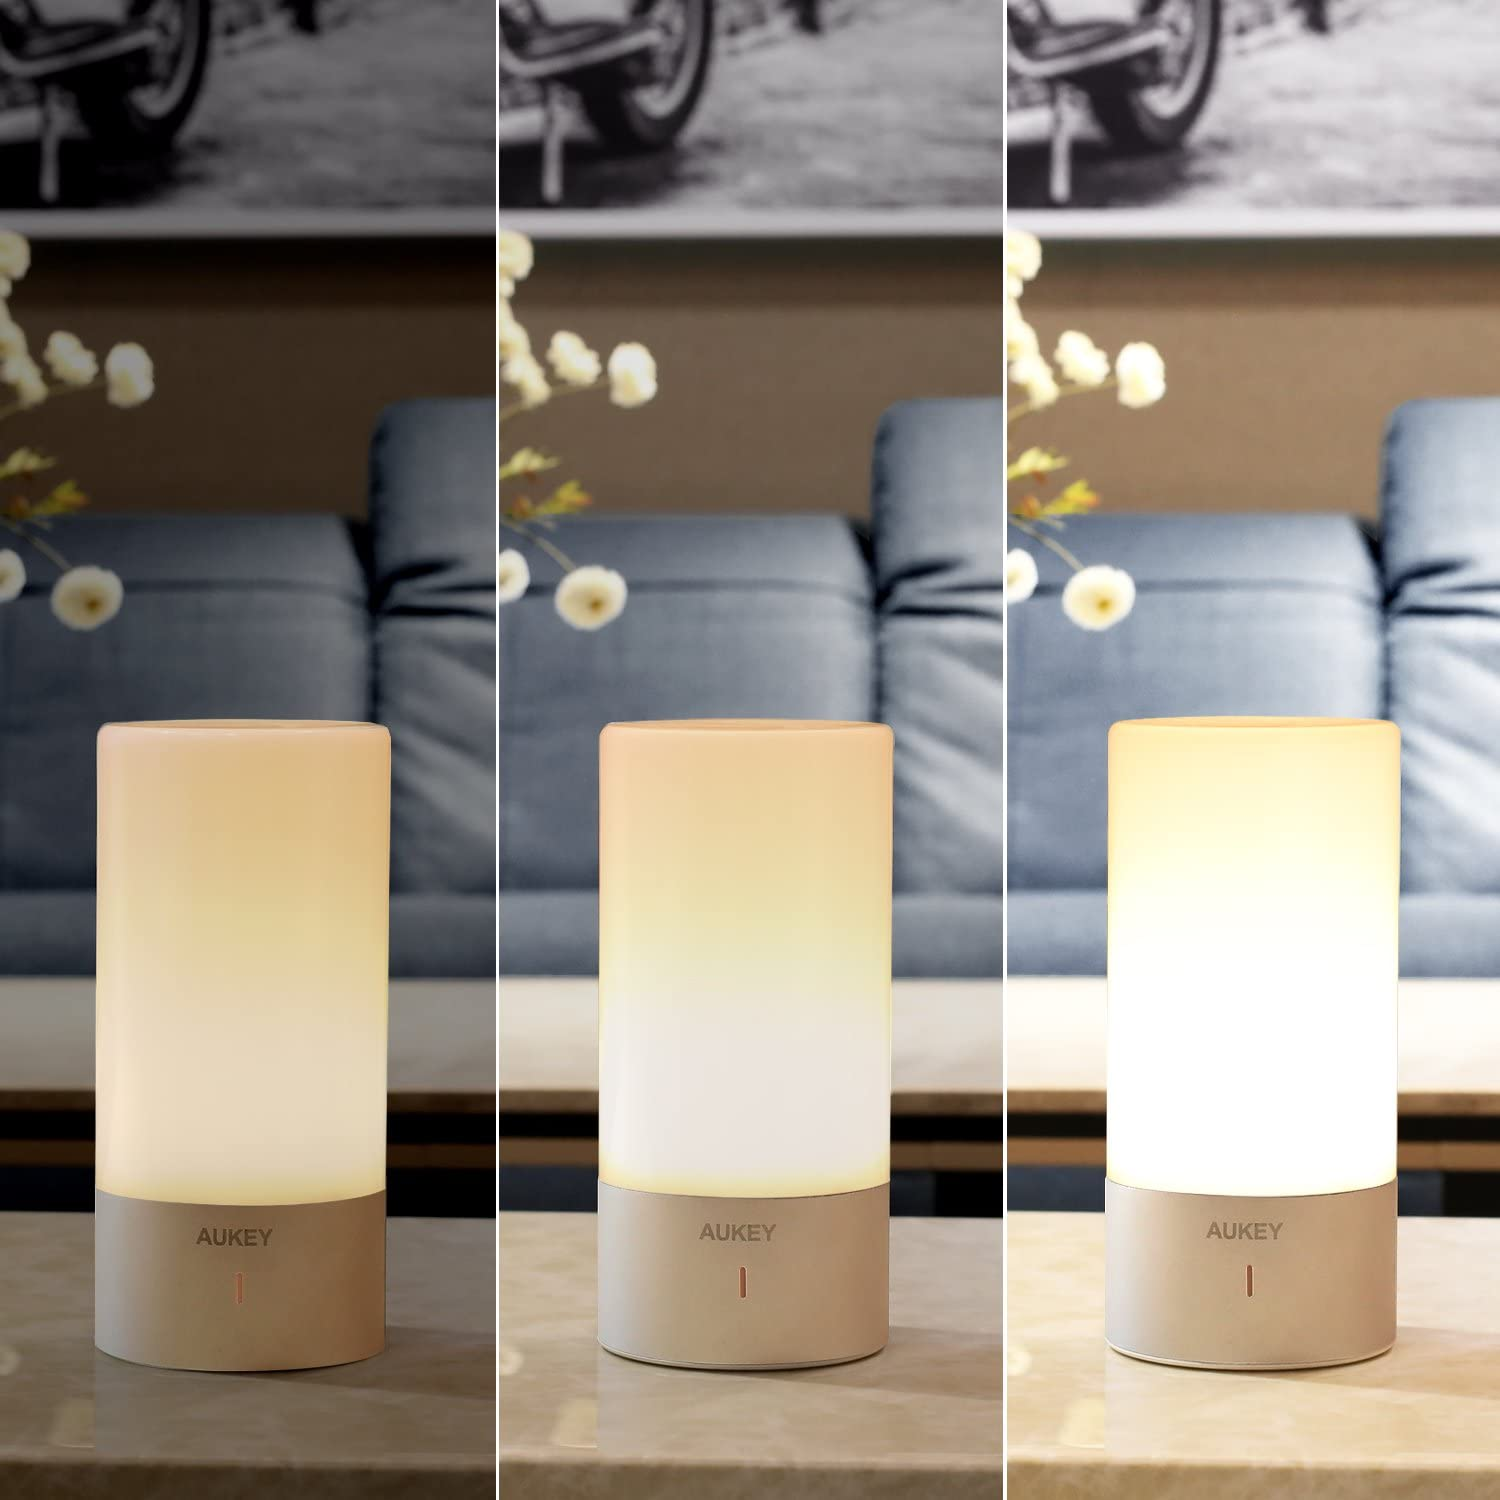 Review of AUKEY Table Lamp, Touch Sensor Bedside Lamps + Dimmable Warm White Light